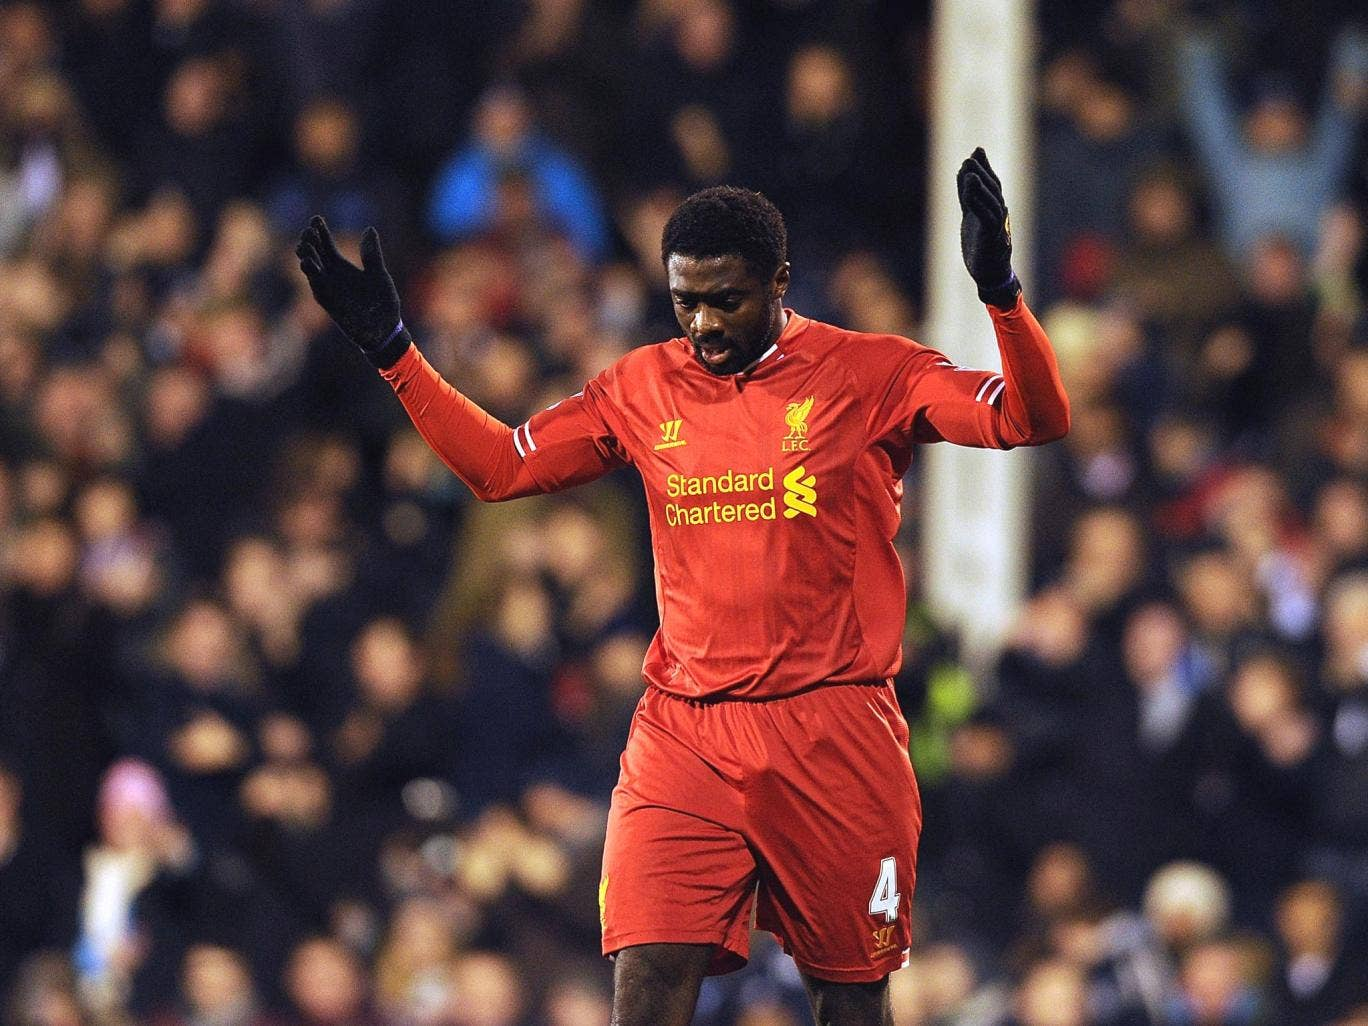 Liverpool escaped with a dramatic win at Fulham – despite Kolo Touré's comical own goal